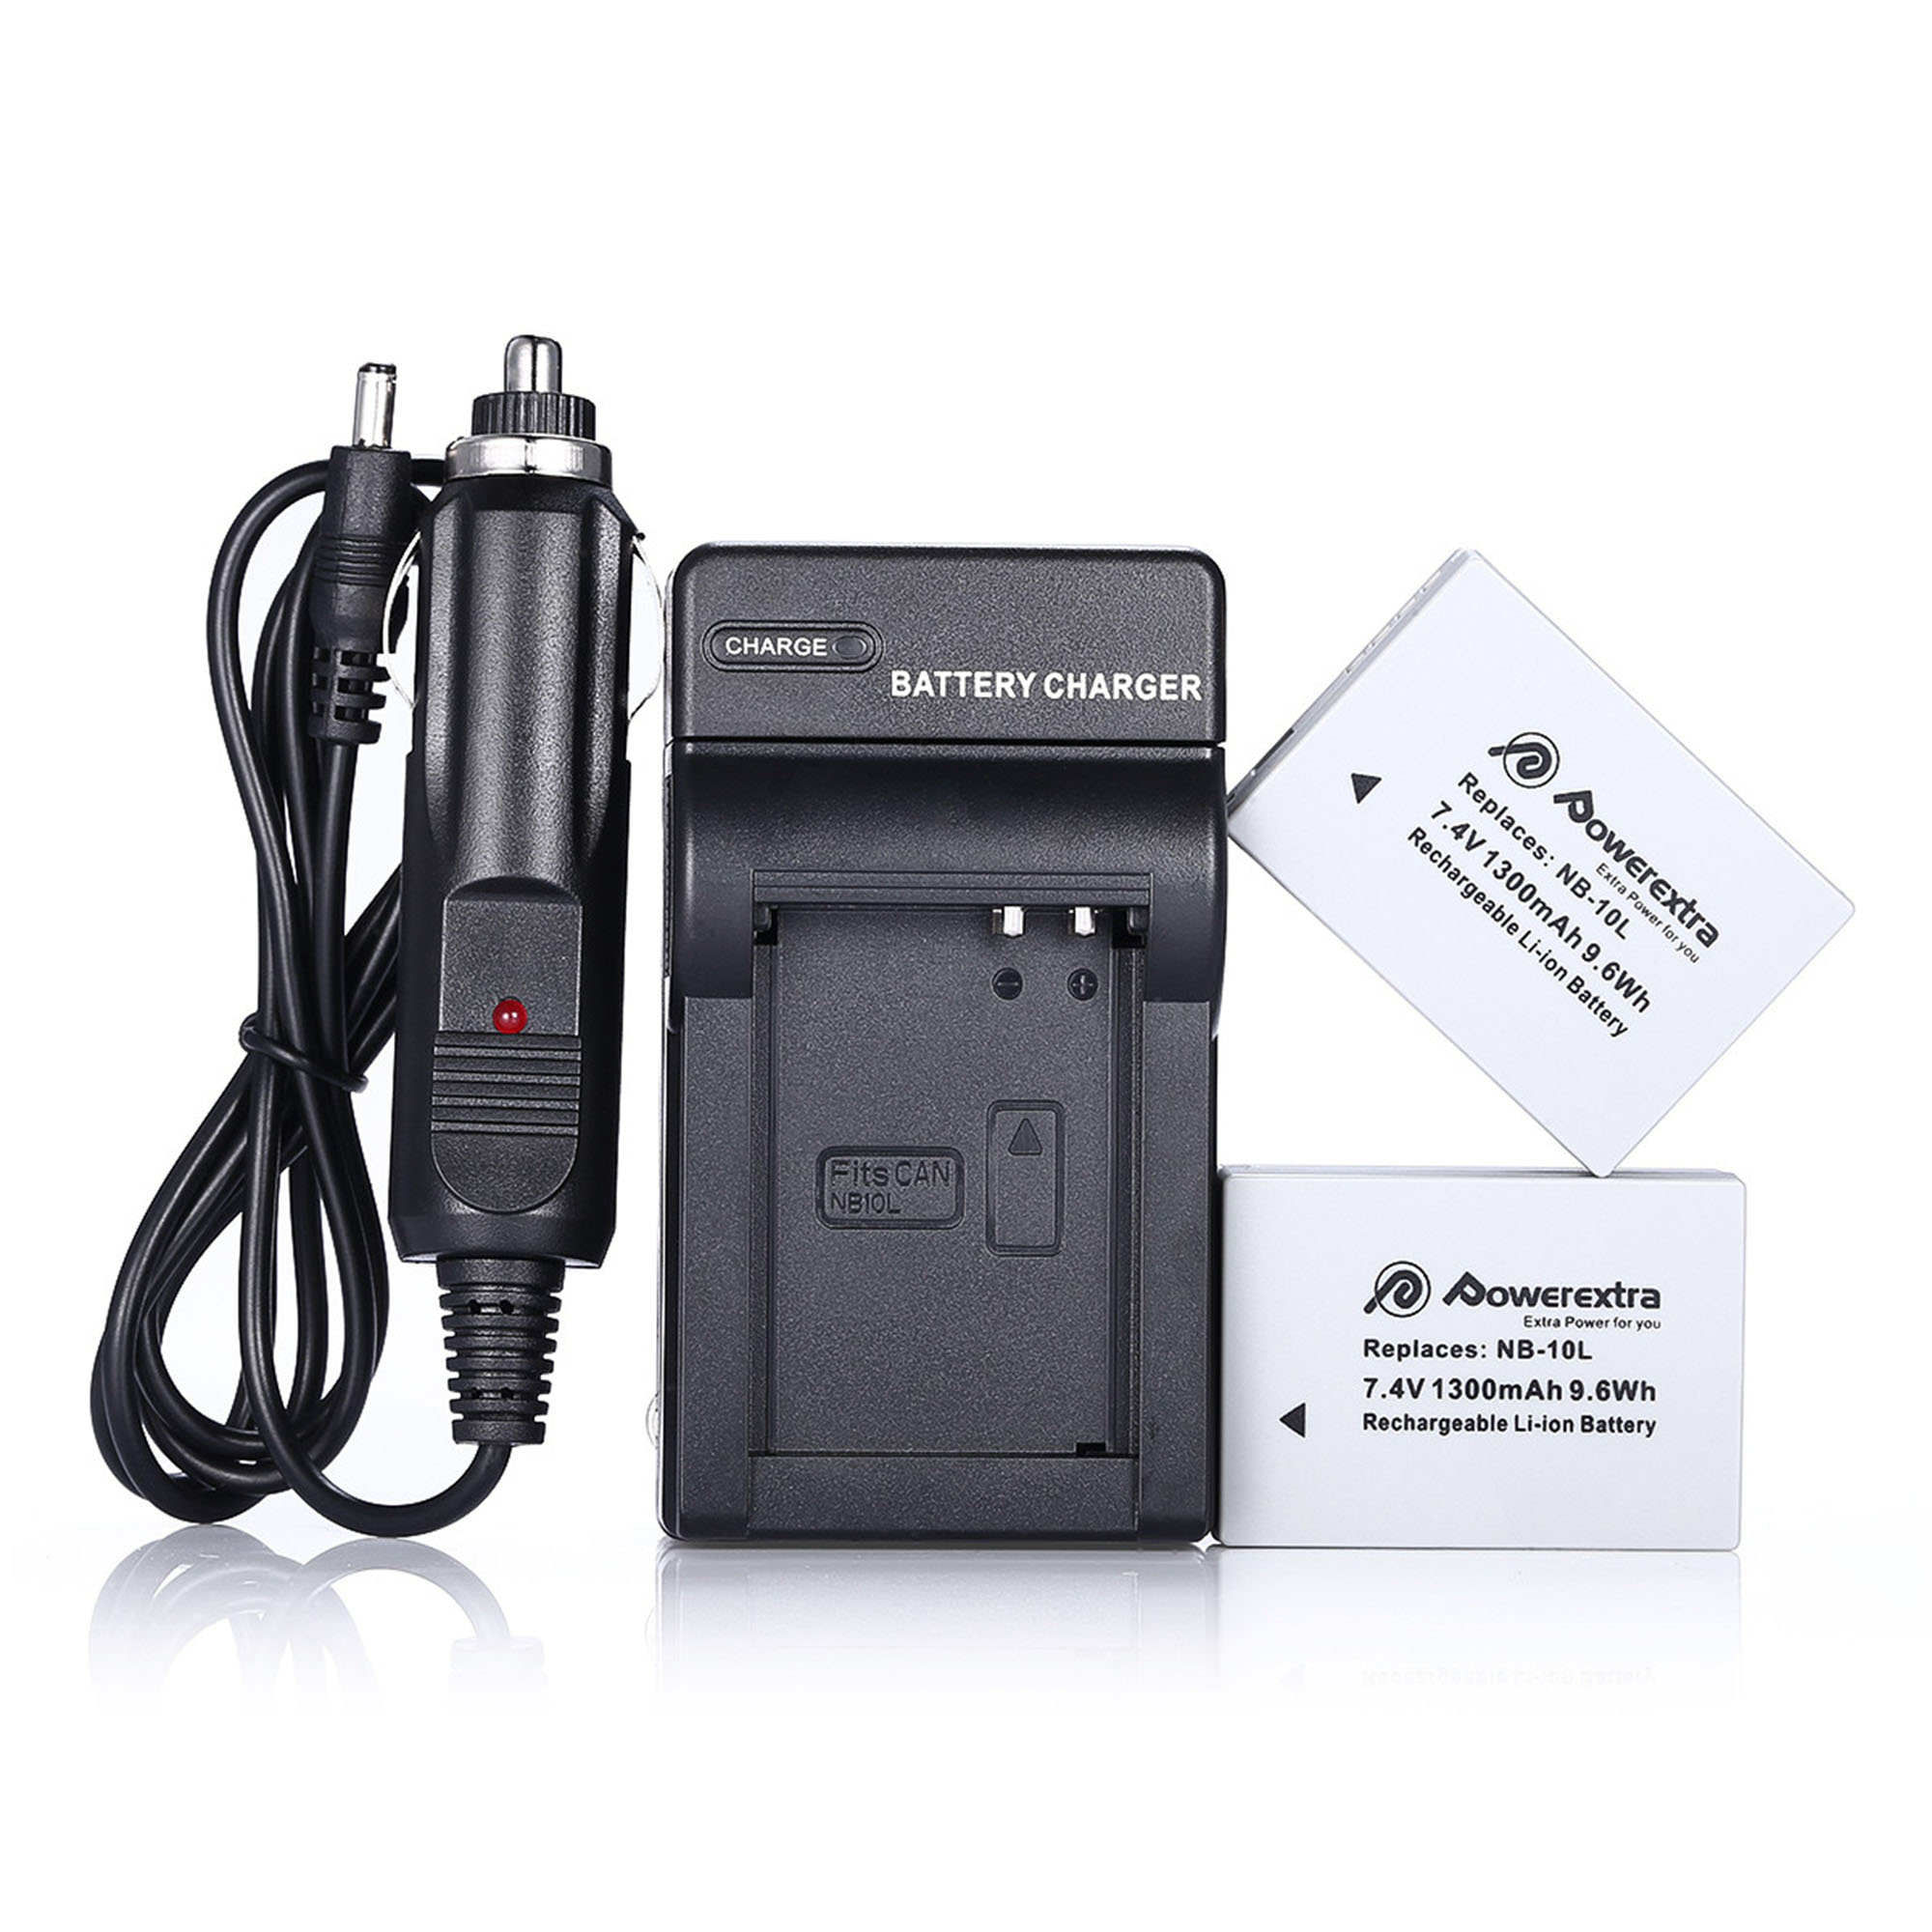 with Charger Canon Powershot SX10 IS Digital Camera Battery Charger Replacement for 4 AA NiMH 2800mAh Rechargeable Batteries